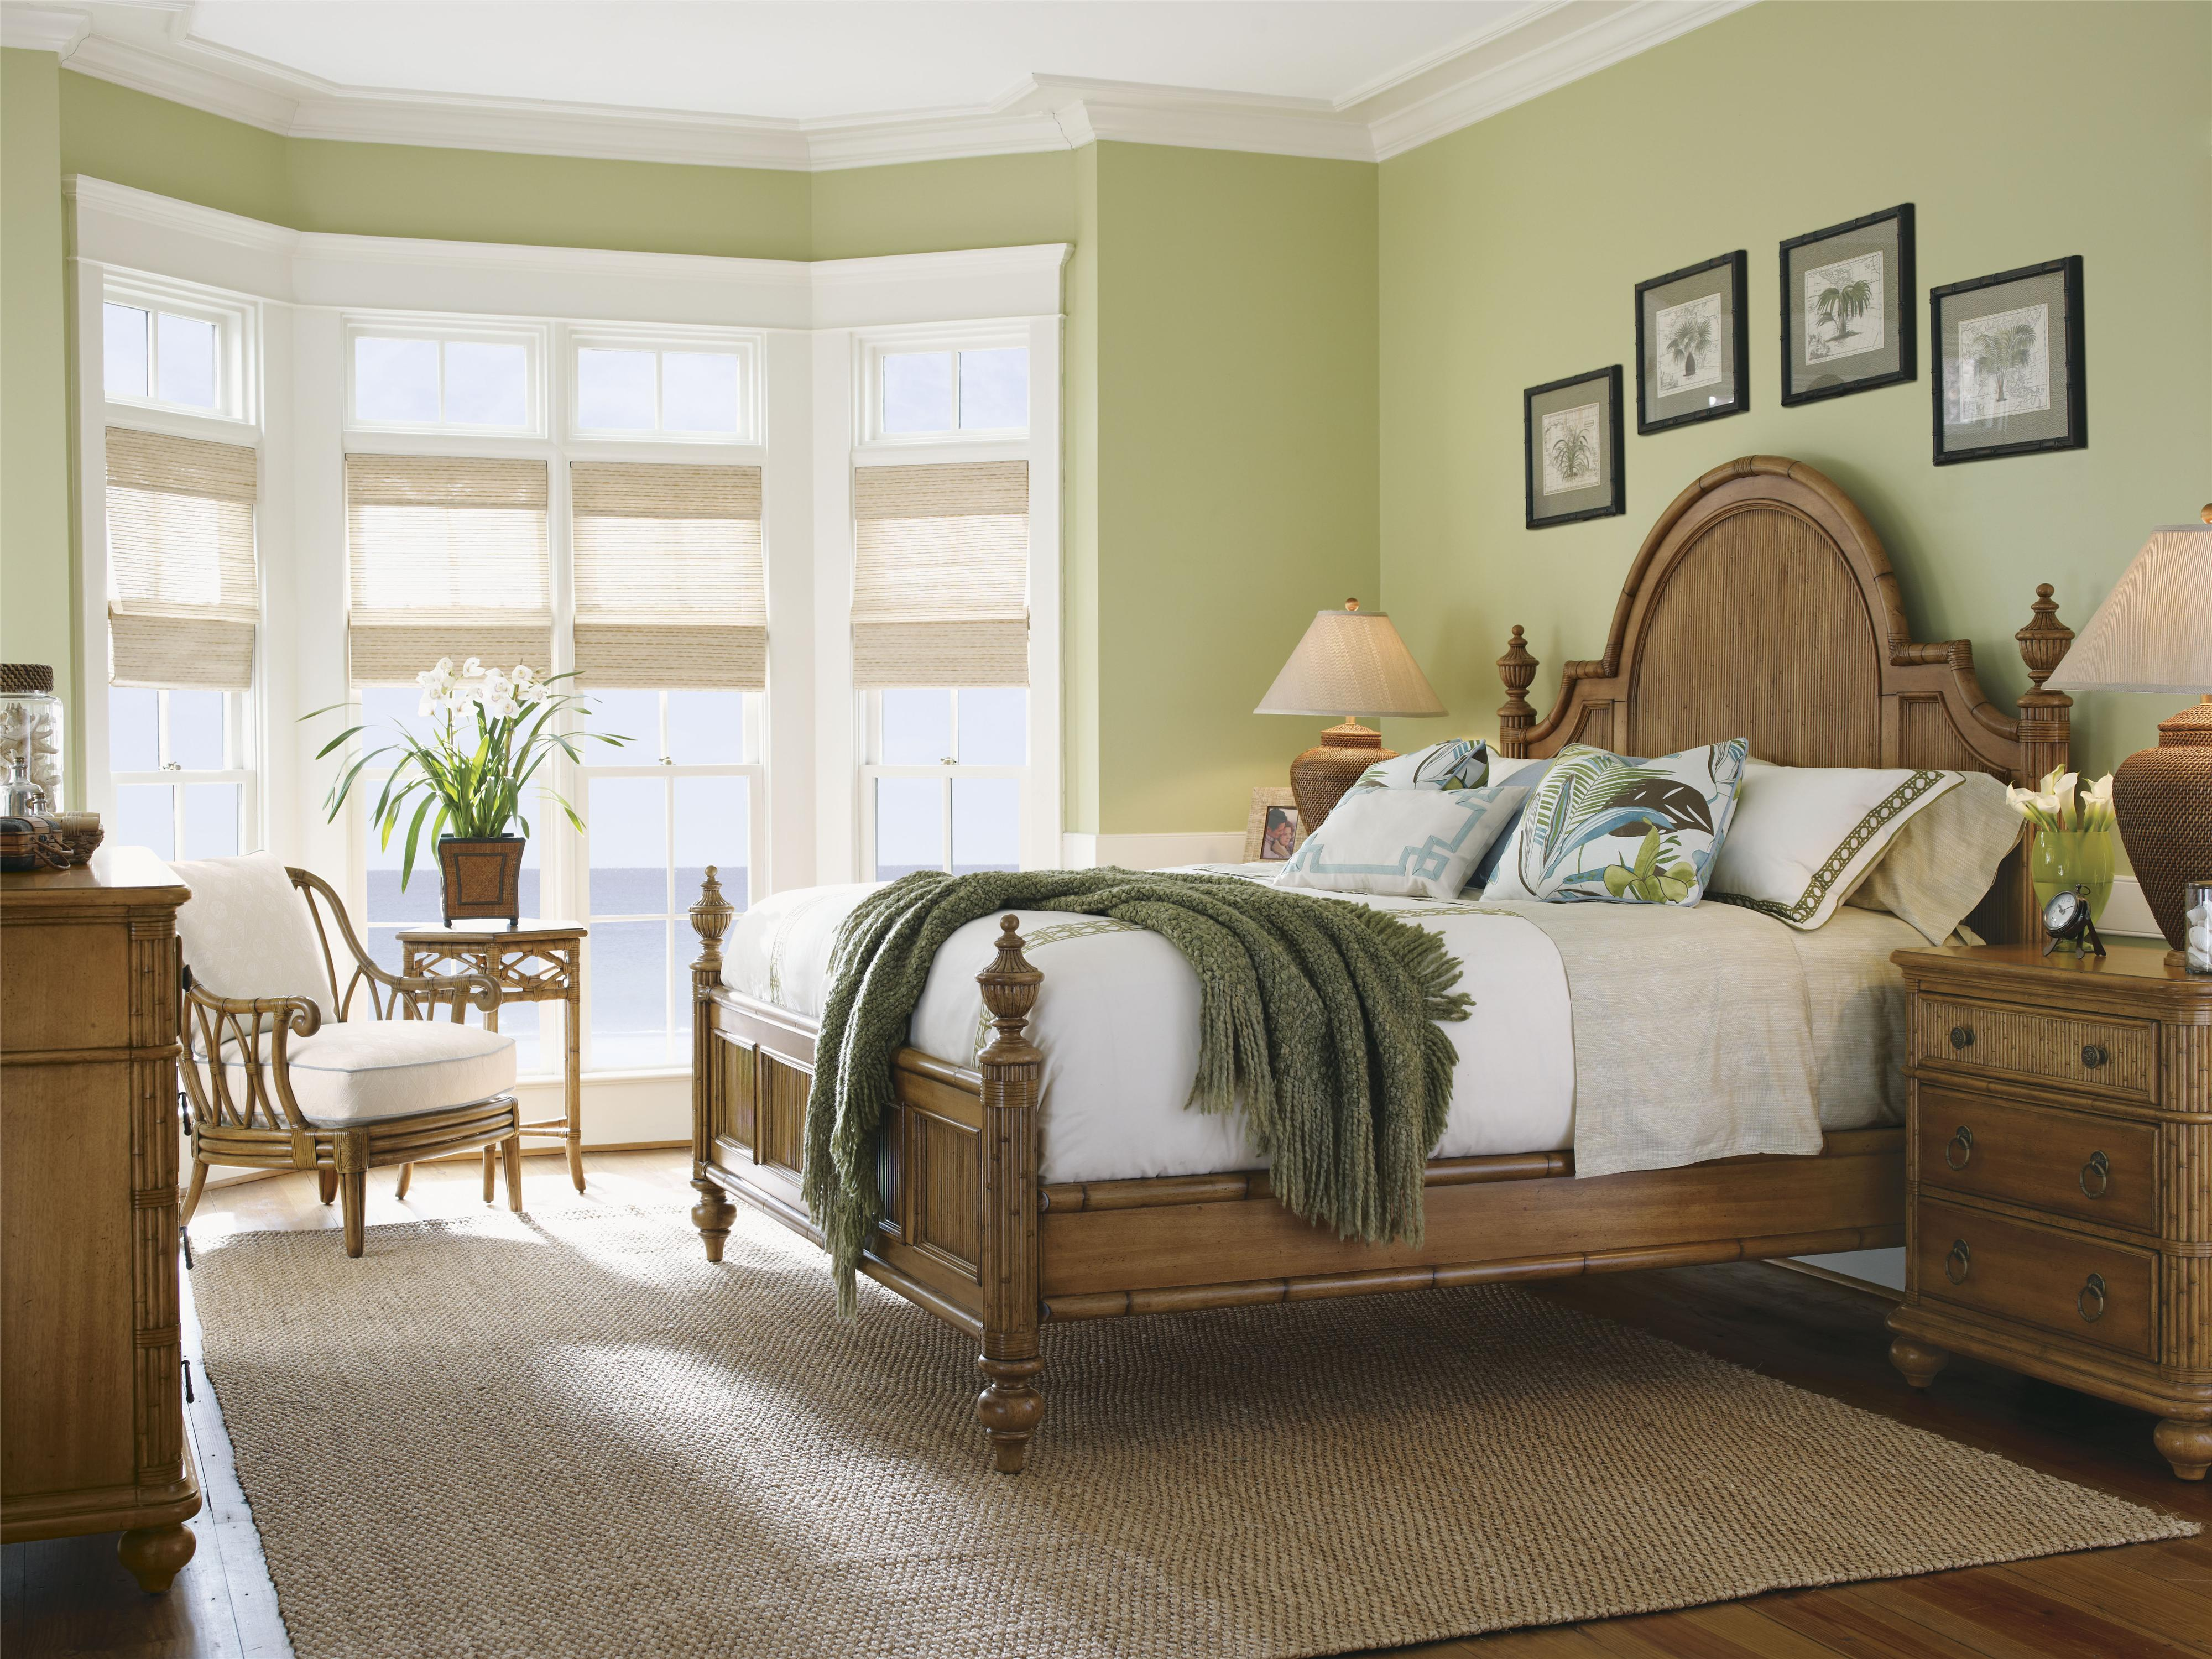 Beachy Bedroom Sets – Beachy Bedroom Sets